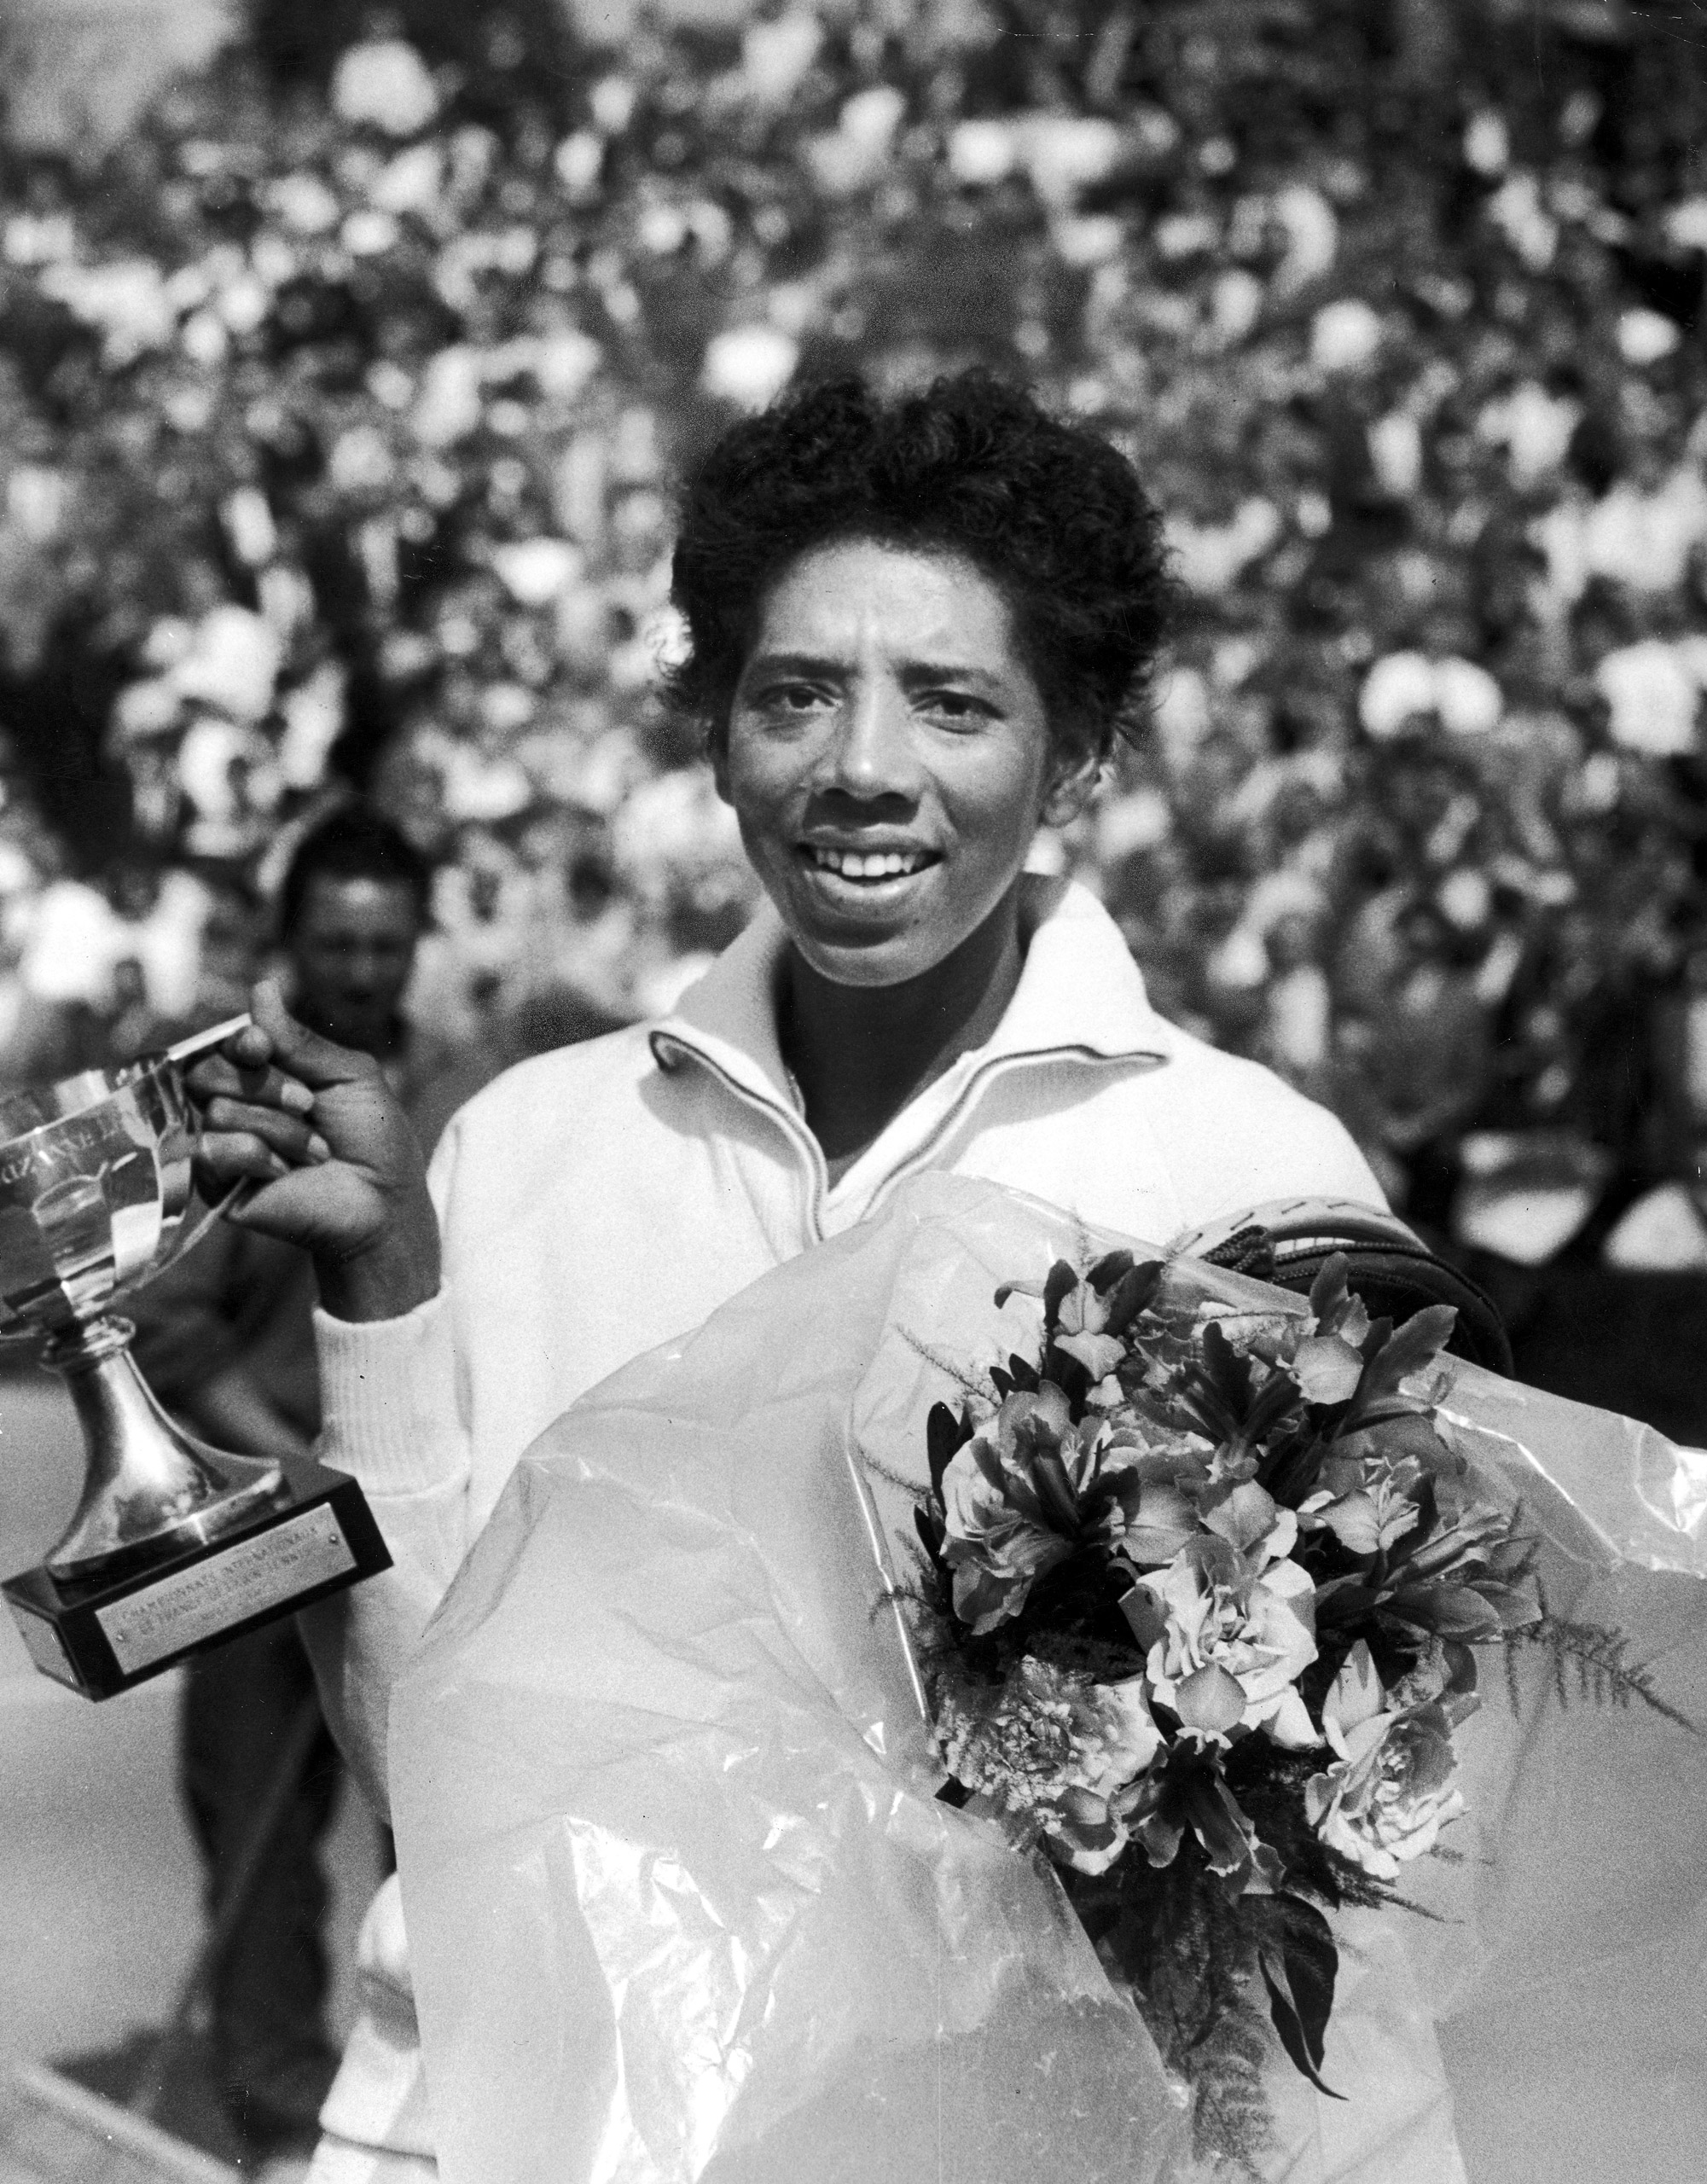 Caption from LIFE. Most prized trophy, the Suzanne Lenglen Cup, is held by Althea after winning French title.